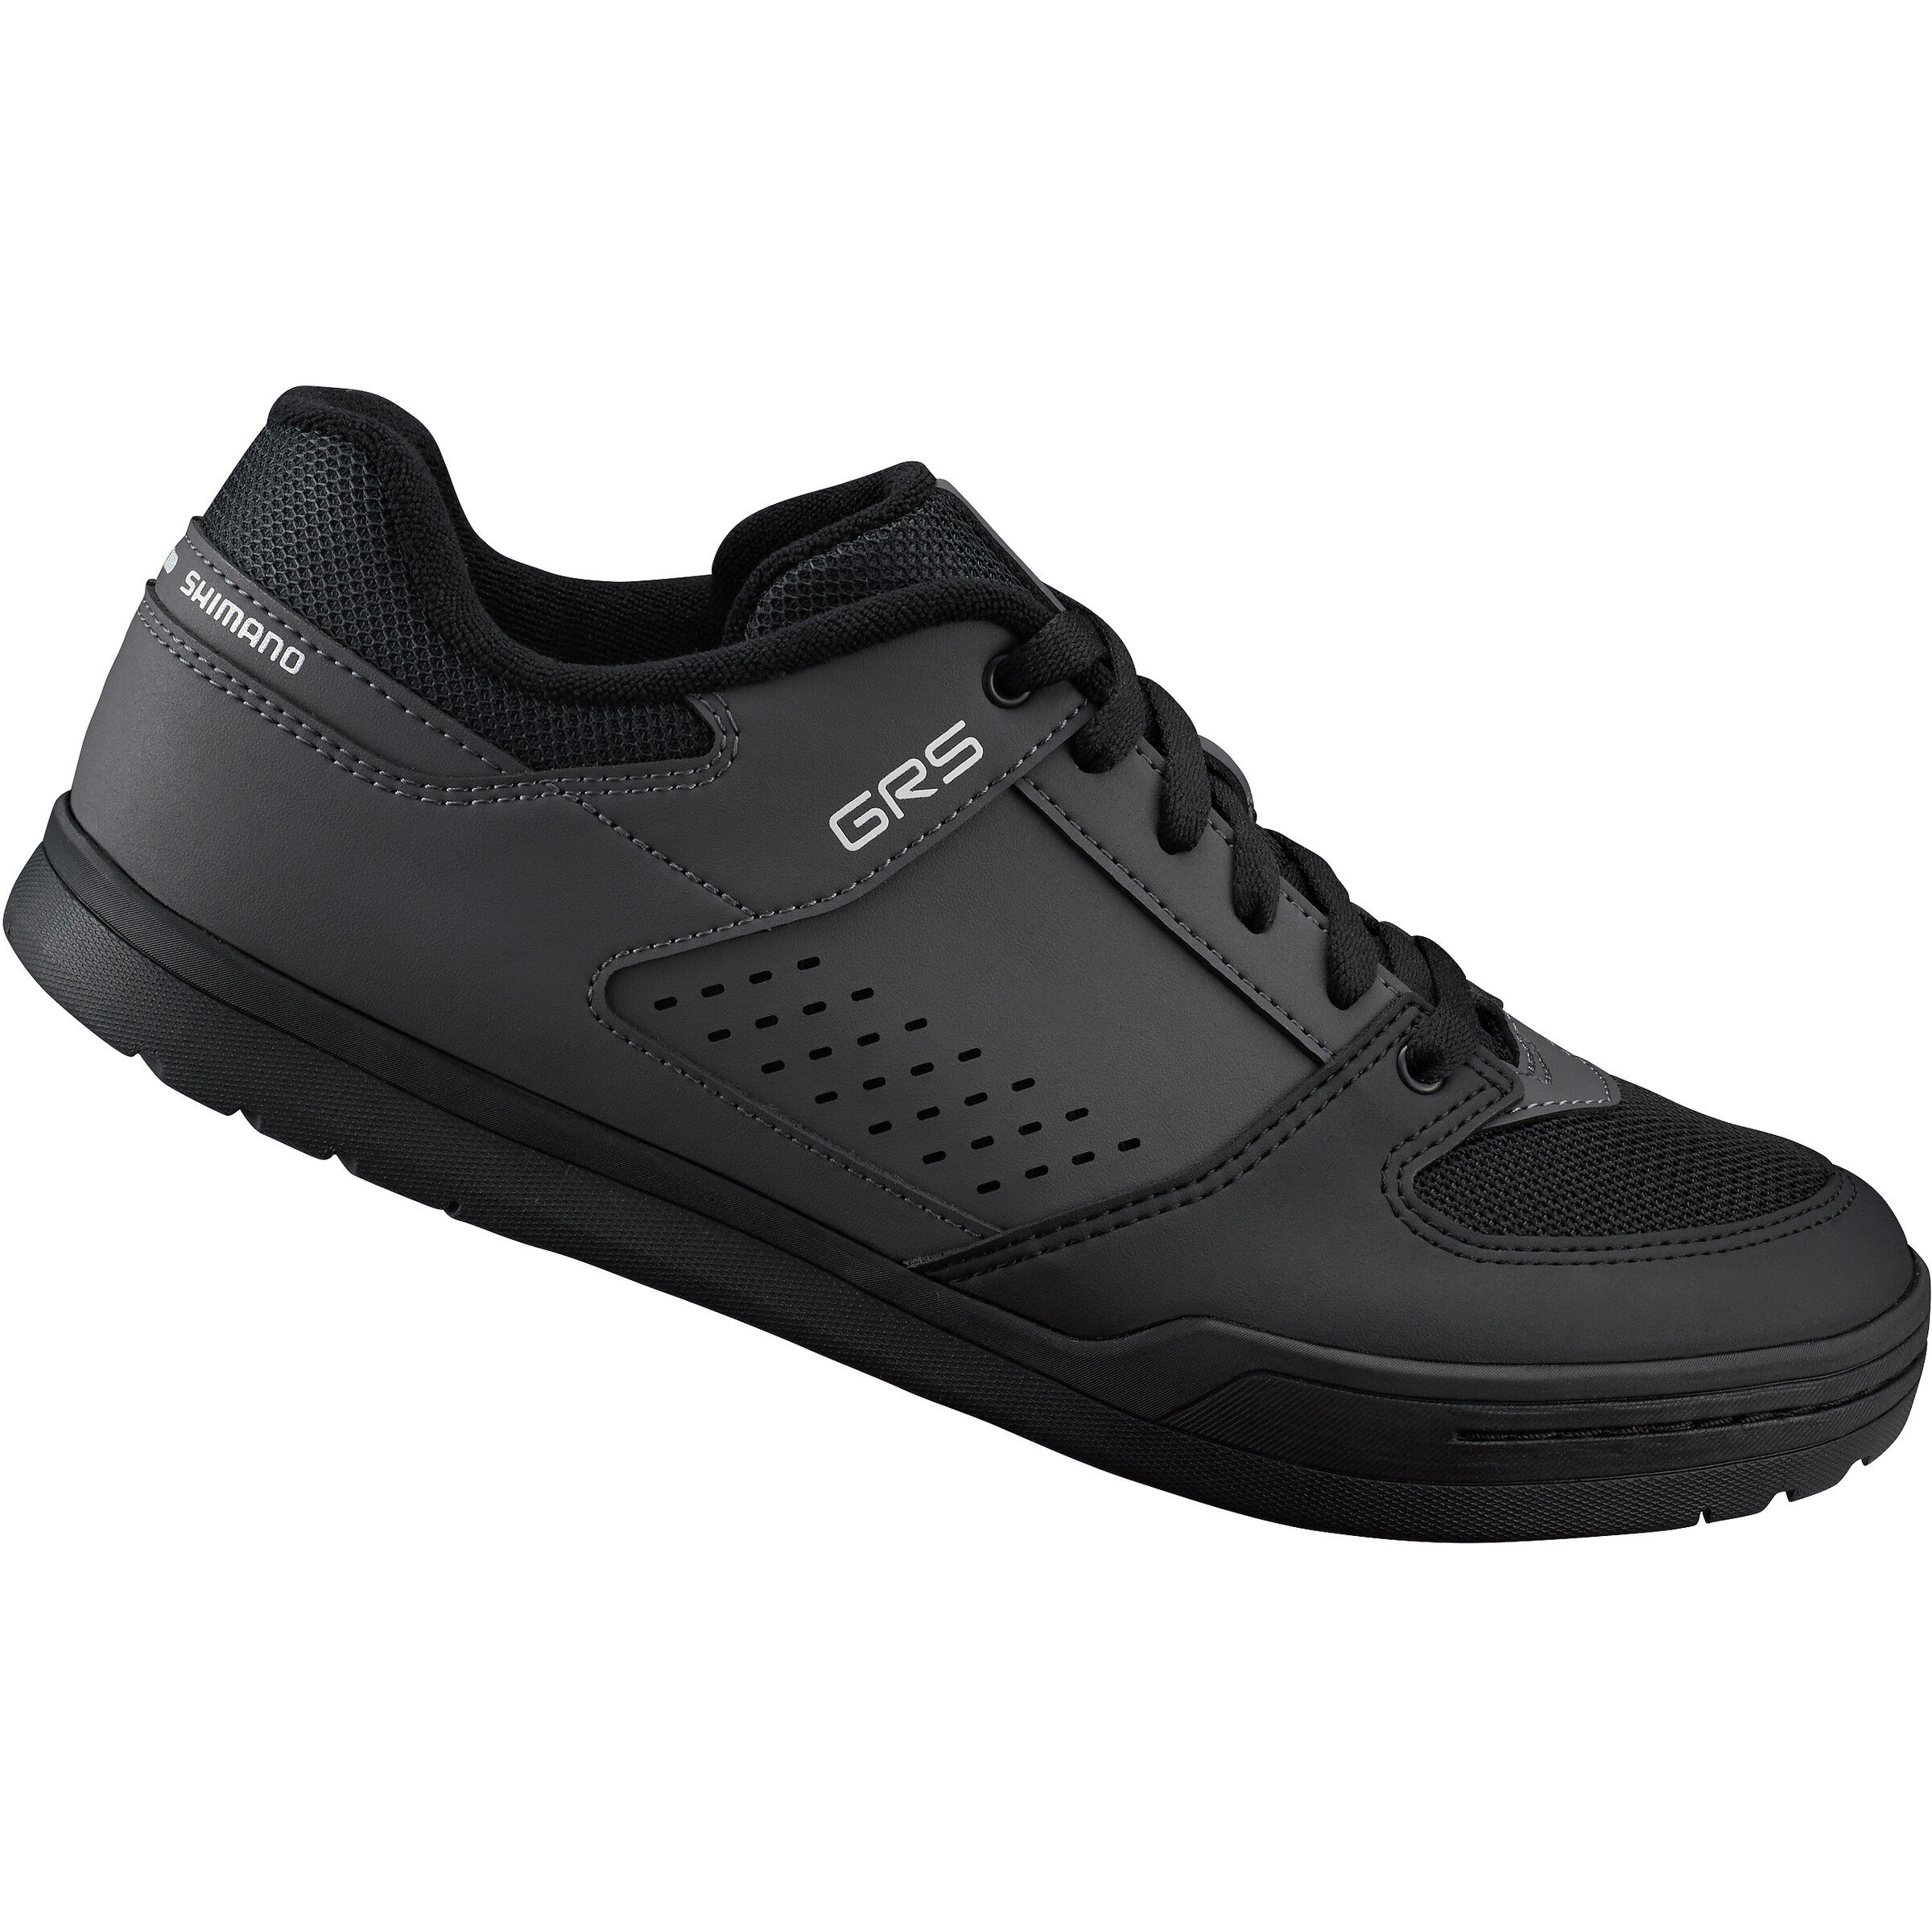 Non Skate Shoes Good For Skating Thread